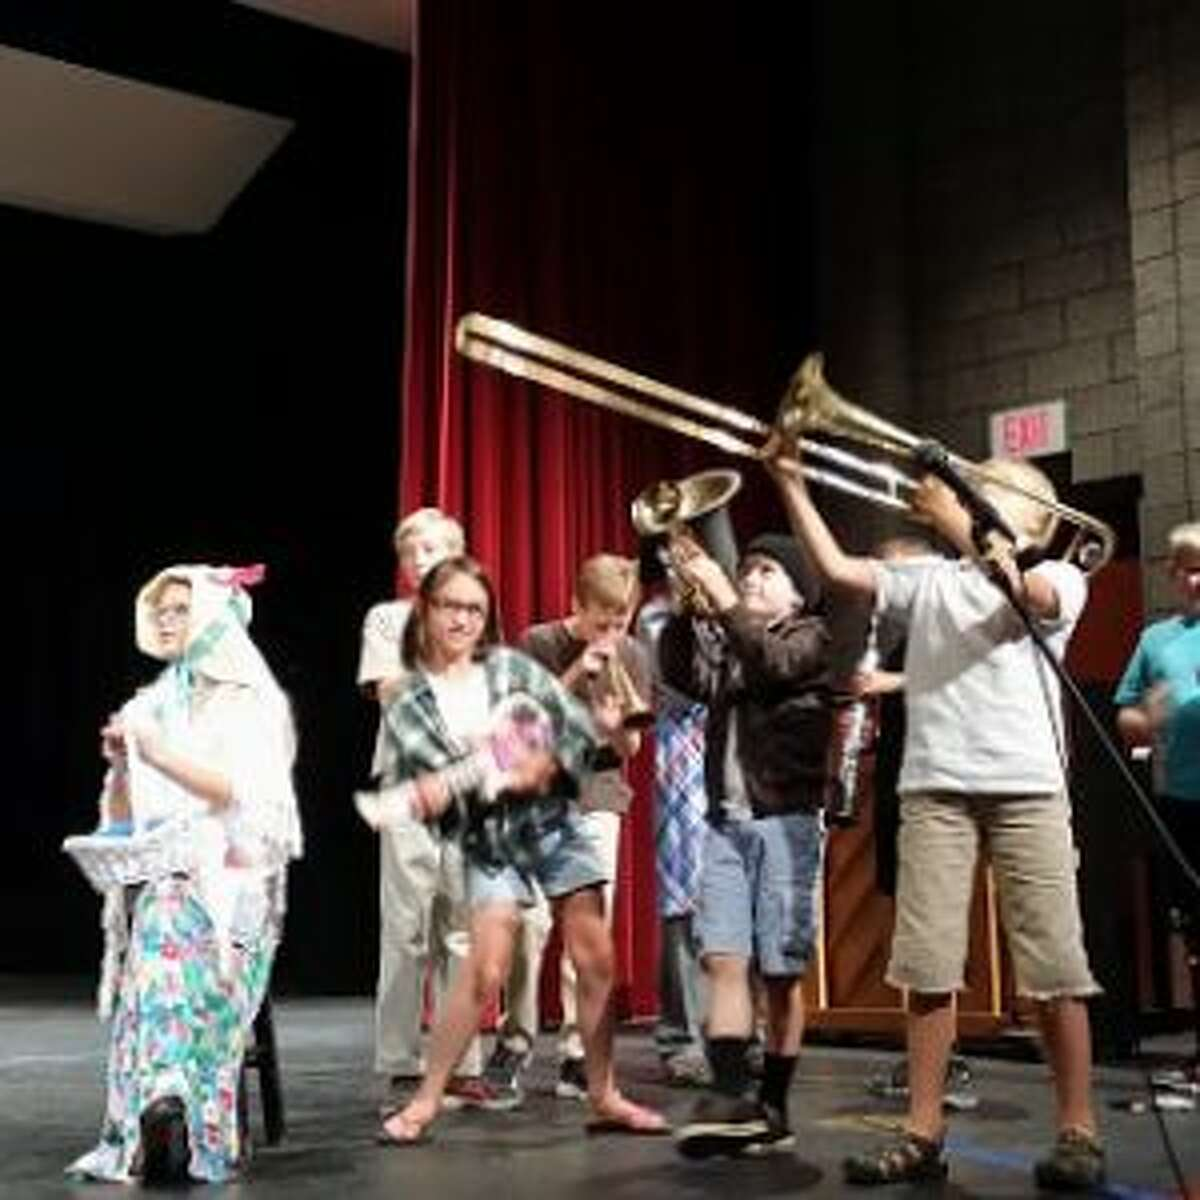 Children perform during last year's Manistee Children's Theater Workshop, developing stage skills and learning how to work with others to create a performance.